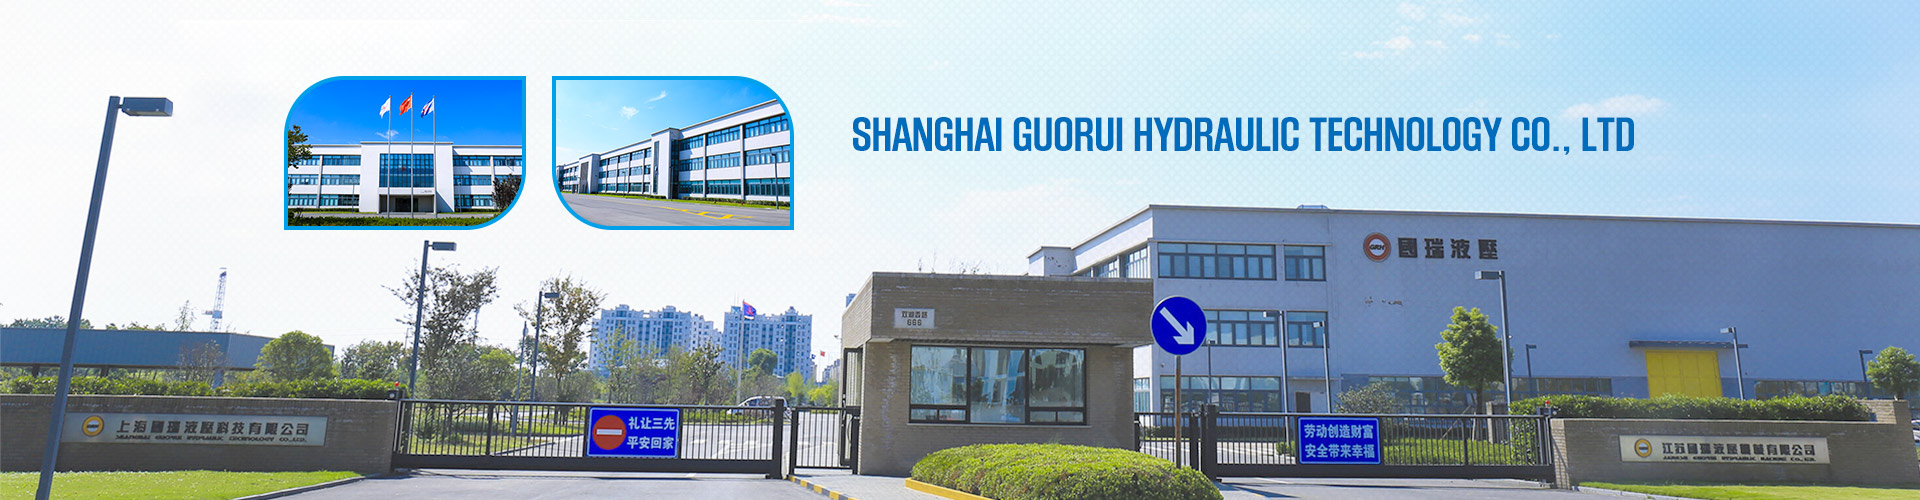 Shanghai Guorui Hydraulic Technology Co, Ltd